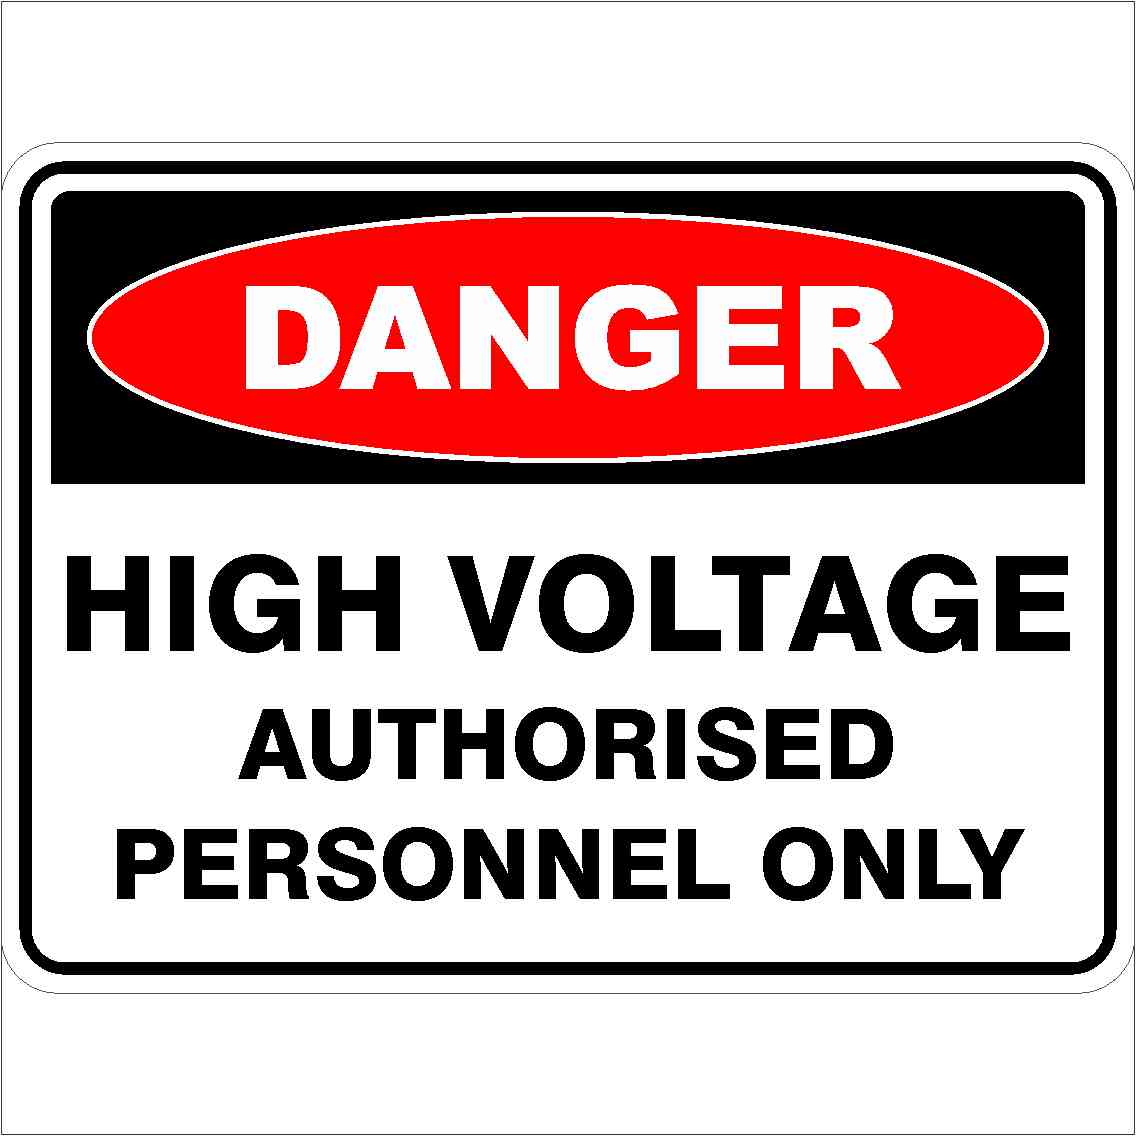 Danger Signs HIGH VOLTAGE AUTHORISED PERSONNEL ONLY